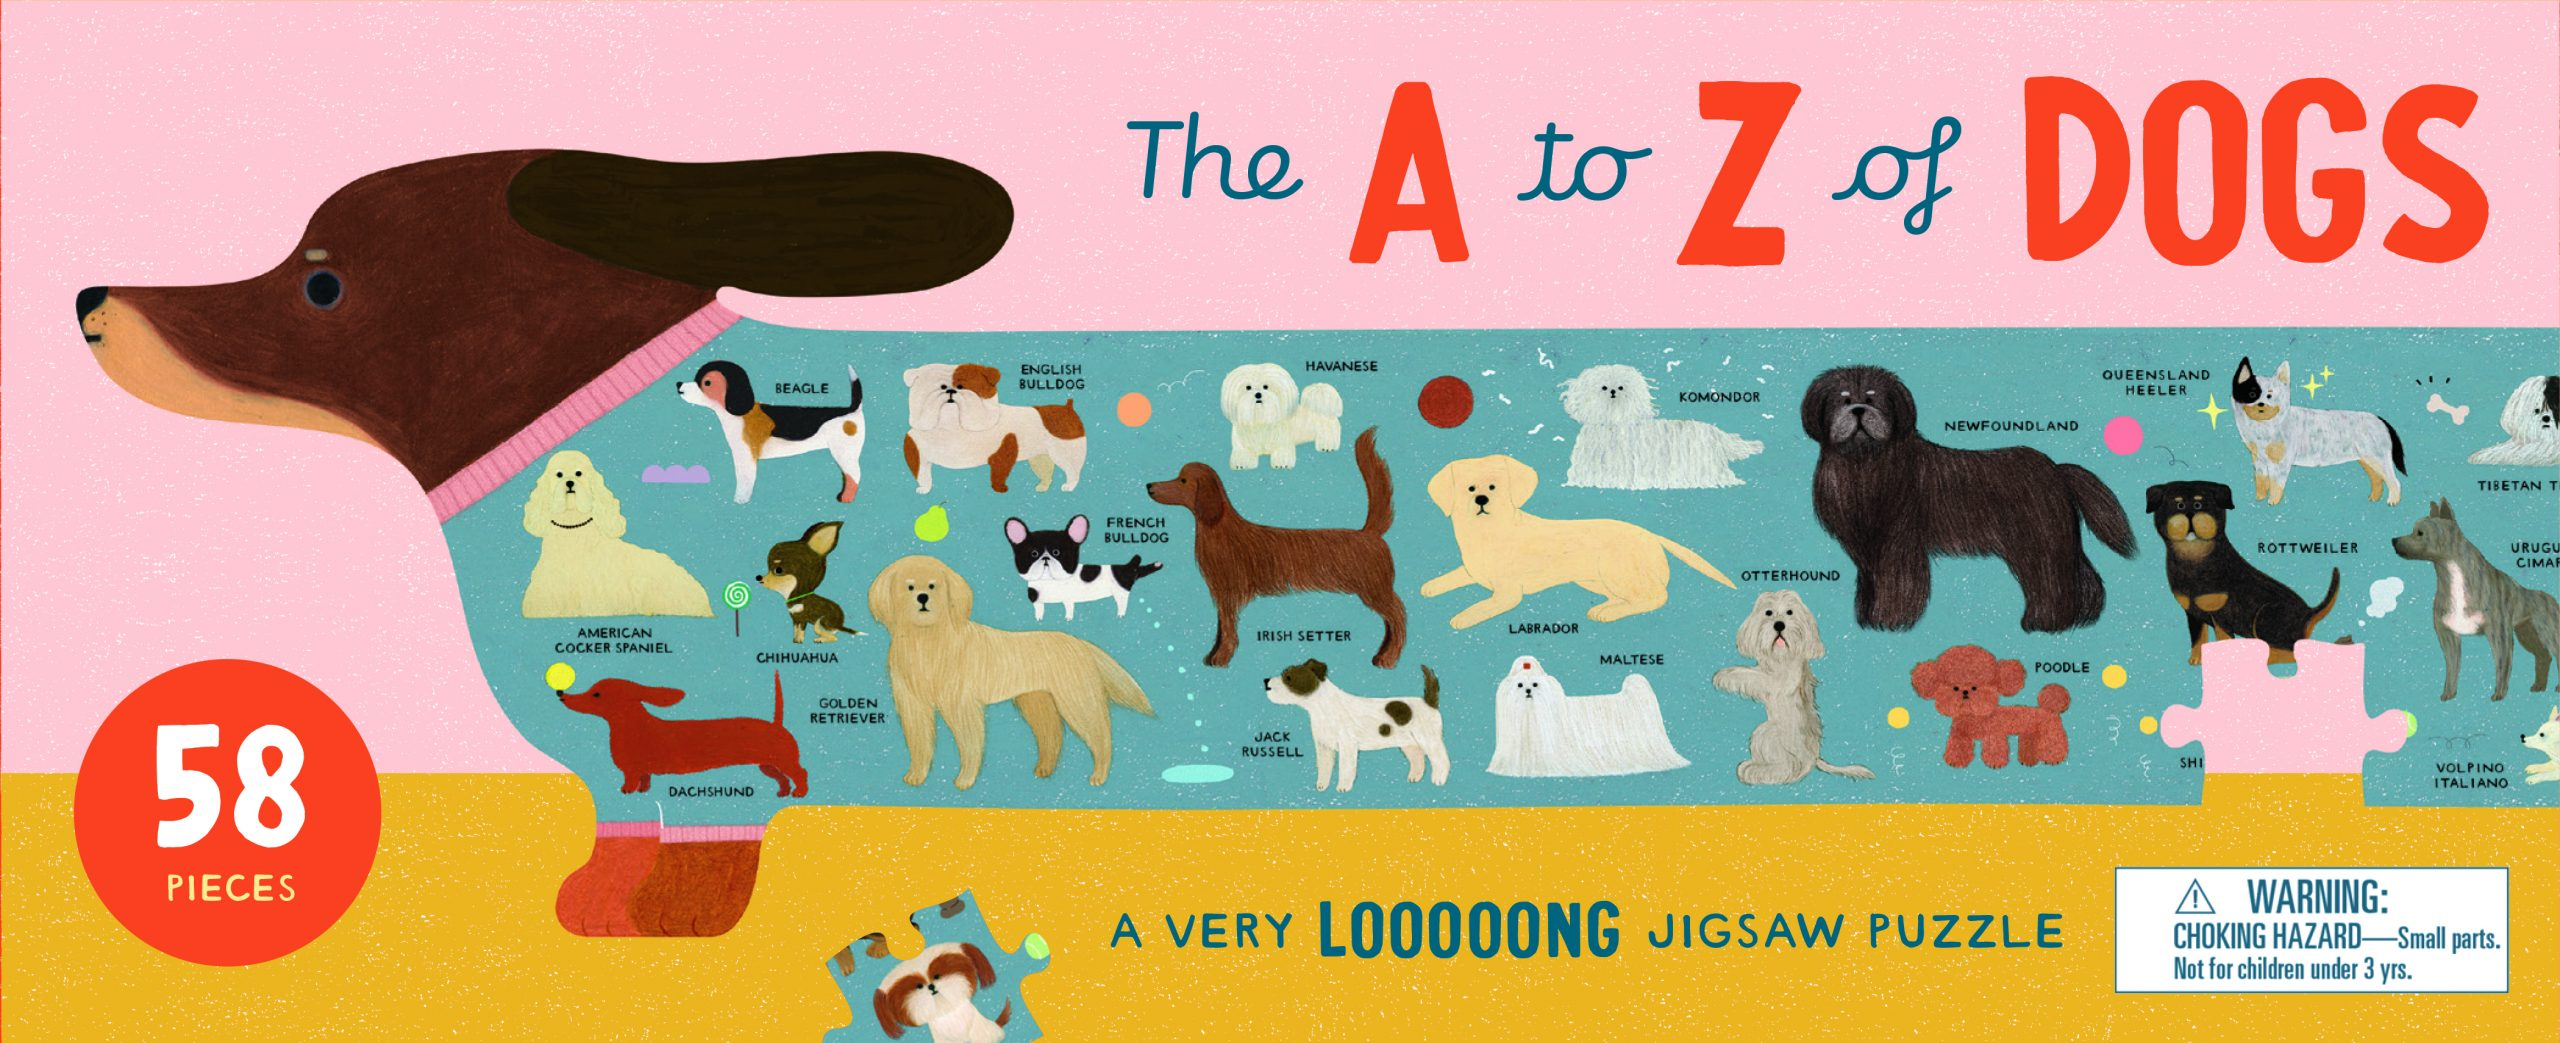 The A to Z of Dogs - Product Thumbnail